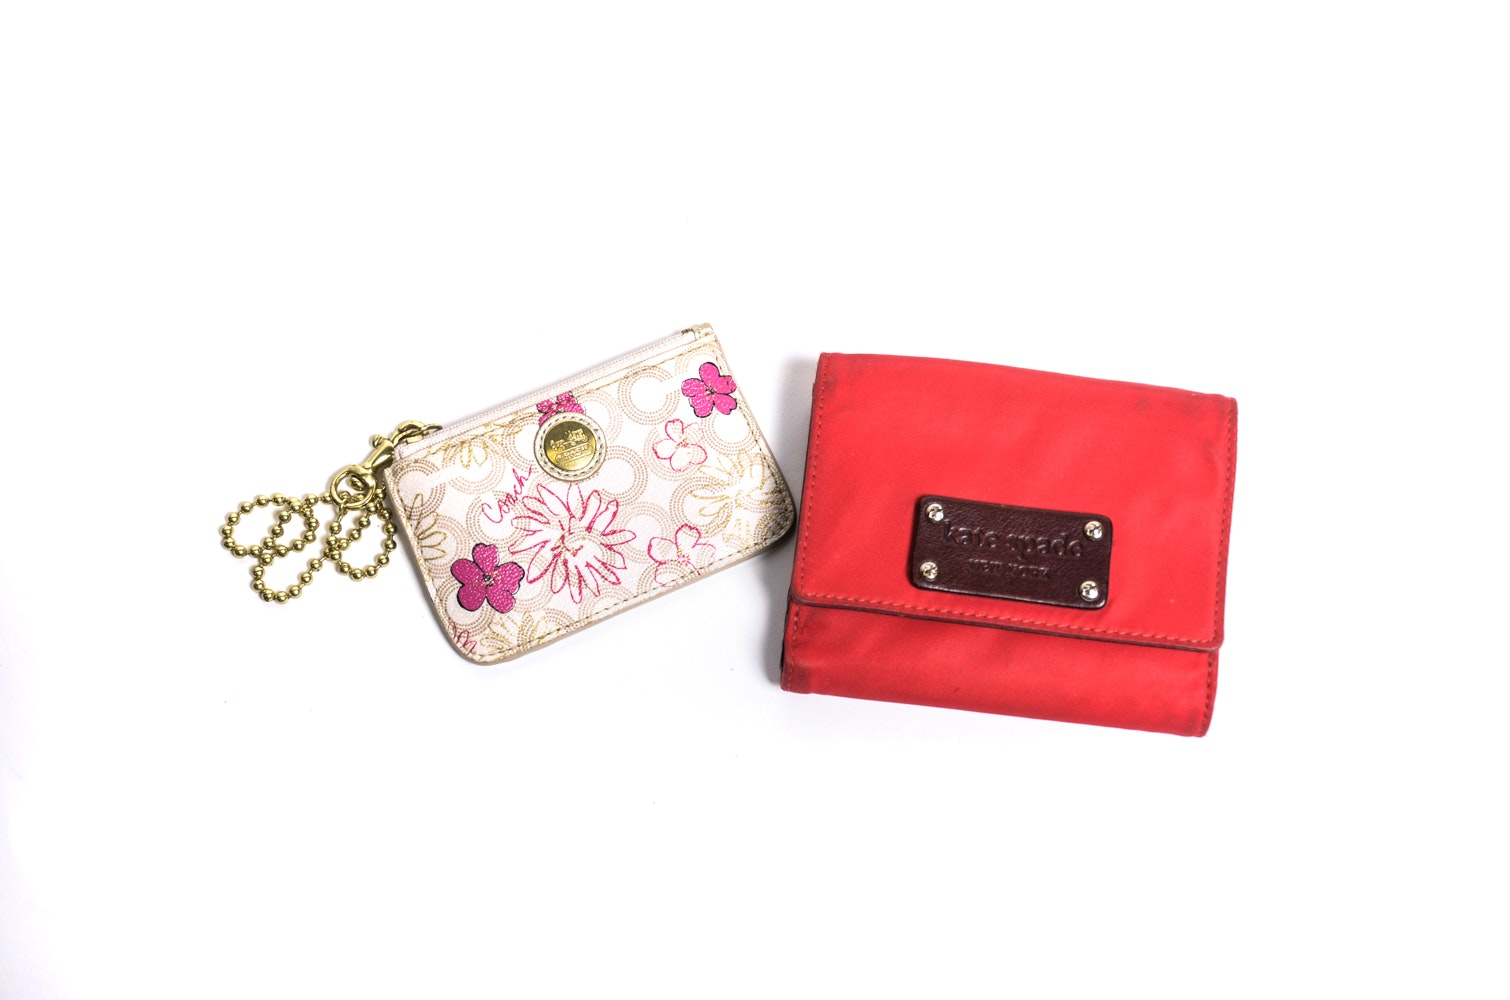 Coach and Kate Spade Wallets